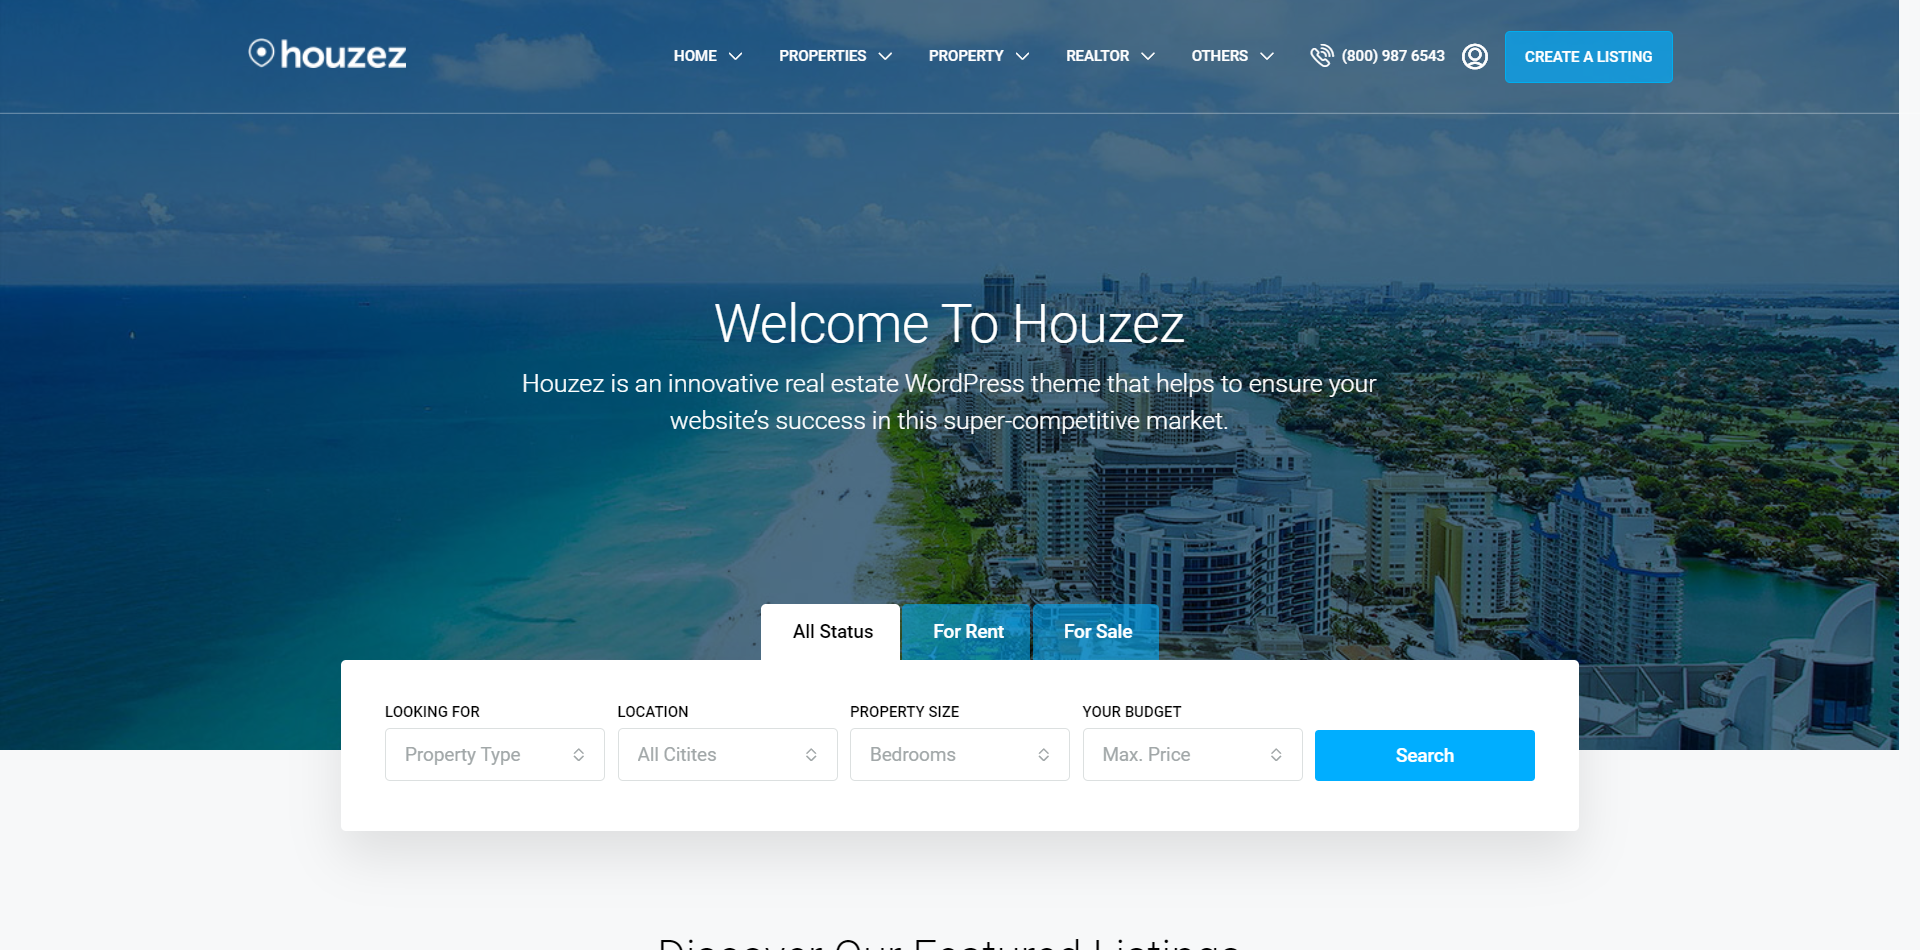 Houzez WordPress Theme - Listing template screenshot